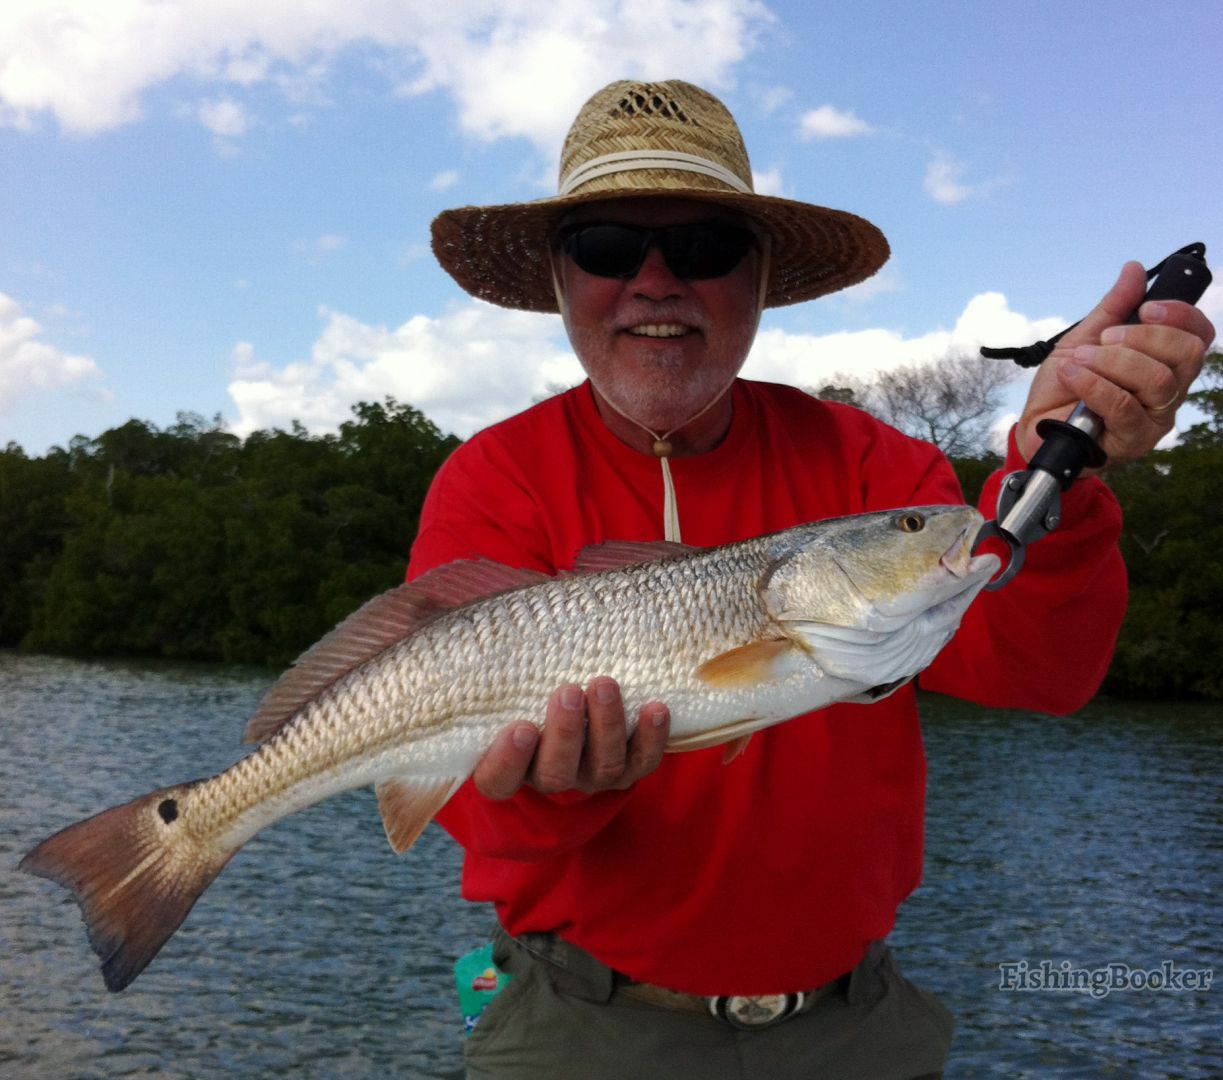 Get hooked charter fishing fort myers beach florida for Get hooked fishing charters